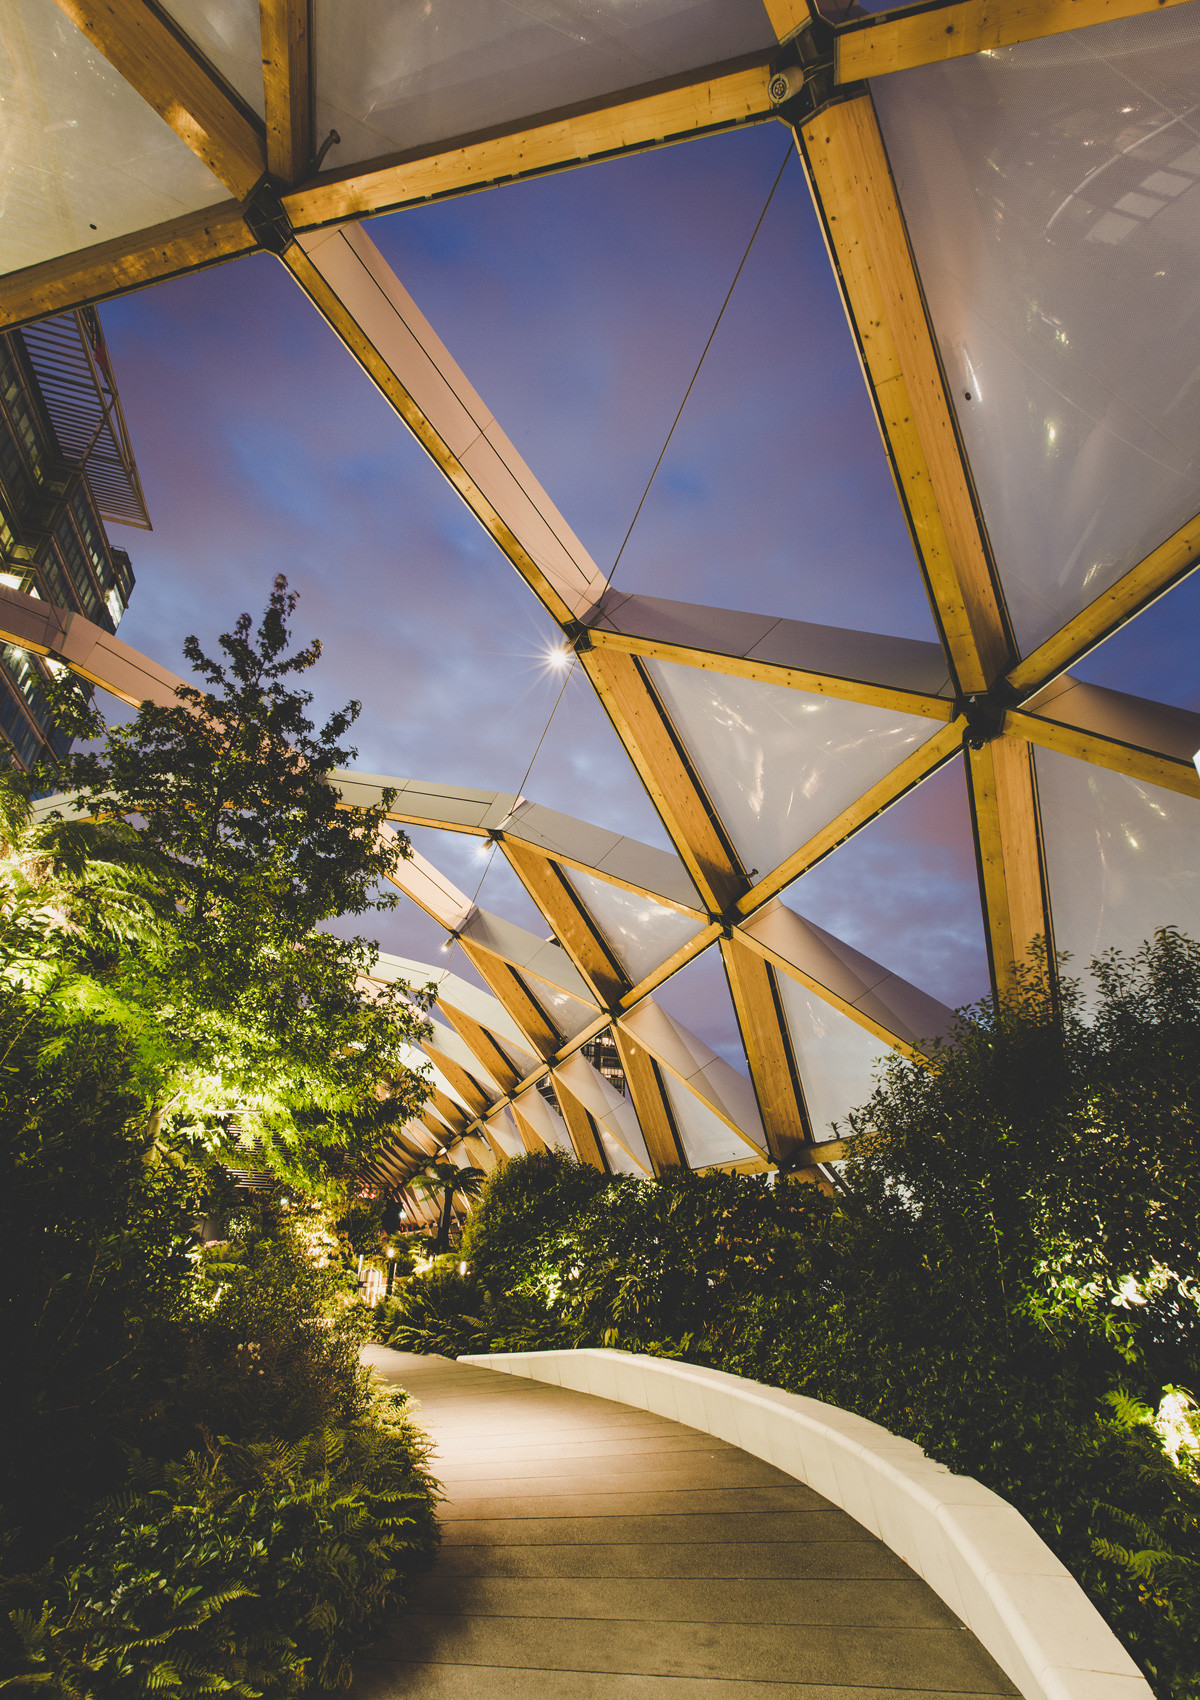 Open House London: green design in city spaces – Cross Rail Roof Garden Interior by night.jpg